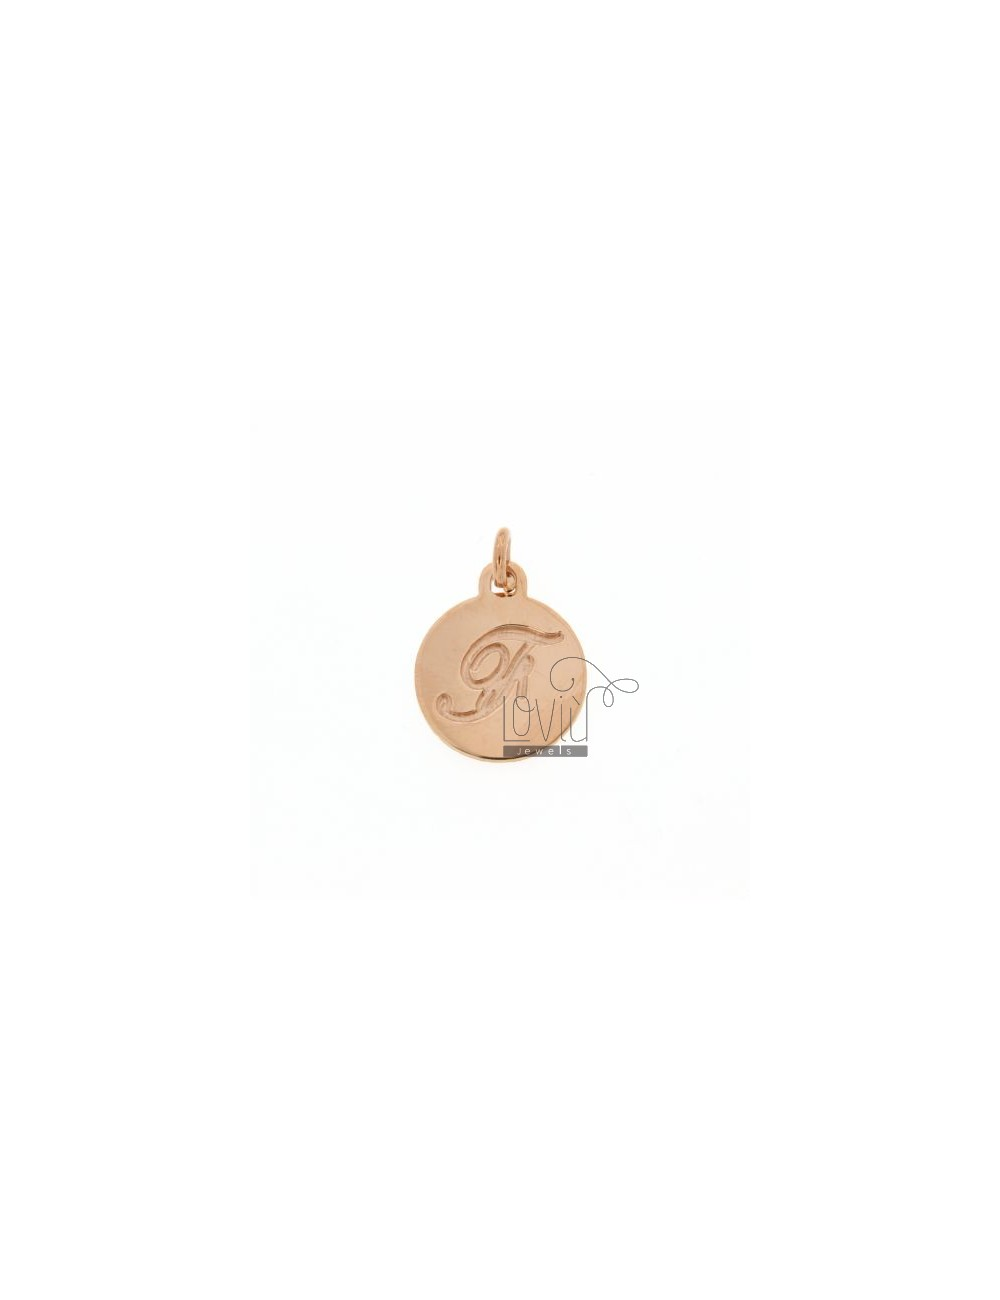 1.5 MM ROUND PENDANT LETTER F WITH ENGRAVED IN TIT AG 925 ROSE GOLD PLATED